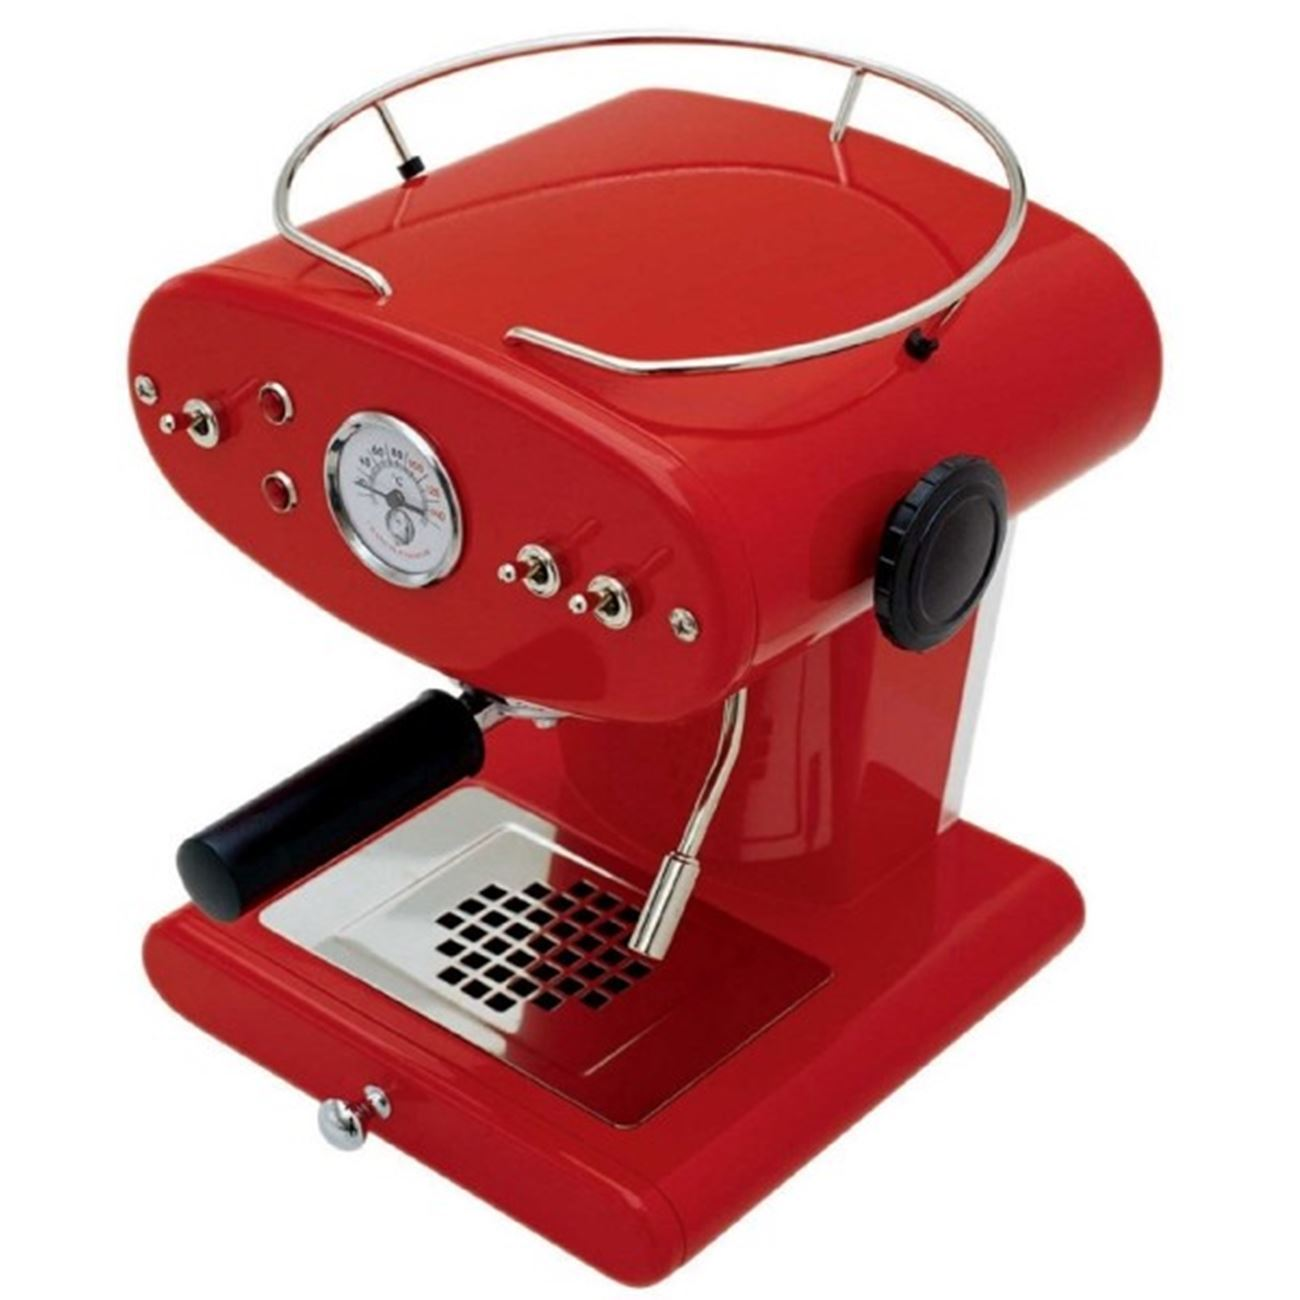 illy francis francis x1 red espresso machines. Black Bedroom Furniture Sets. Home Design Ideas